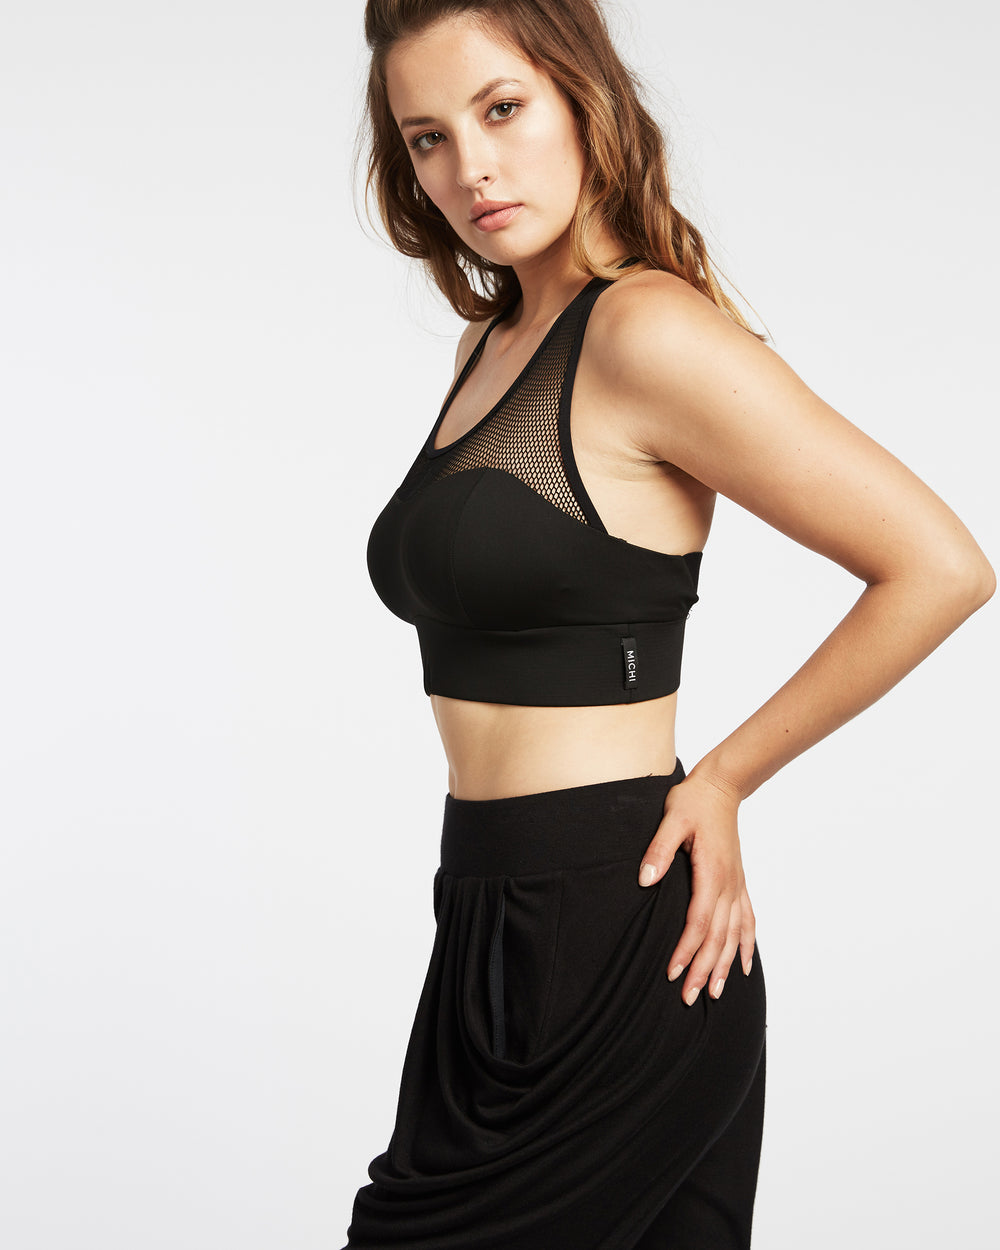 Zero-Gravity Bra - Black